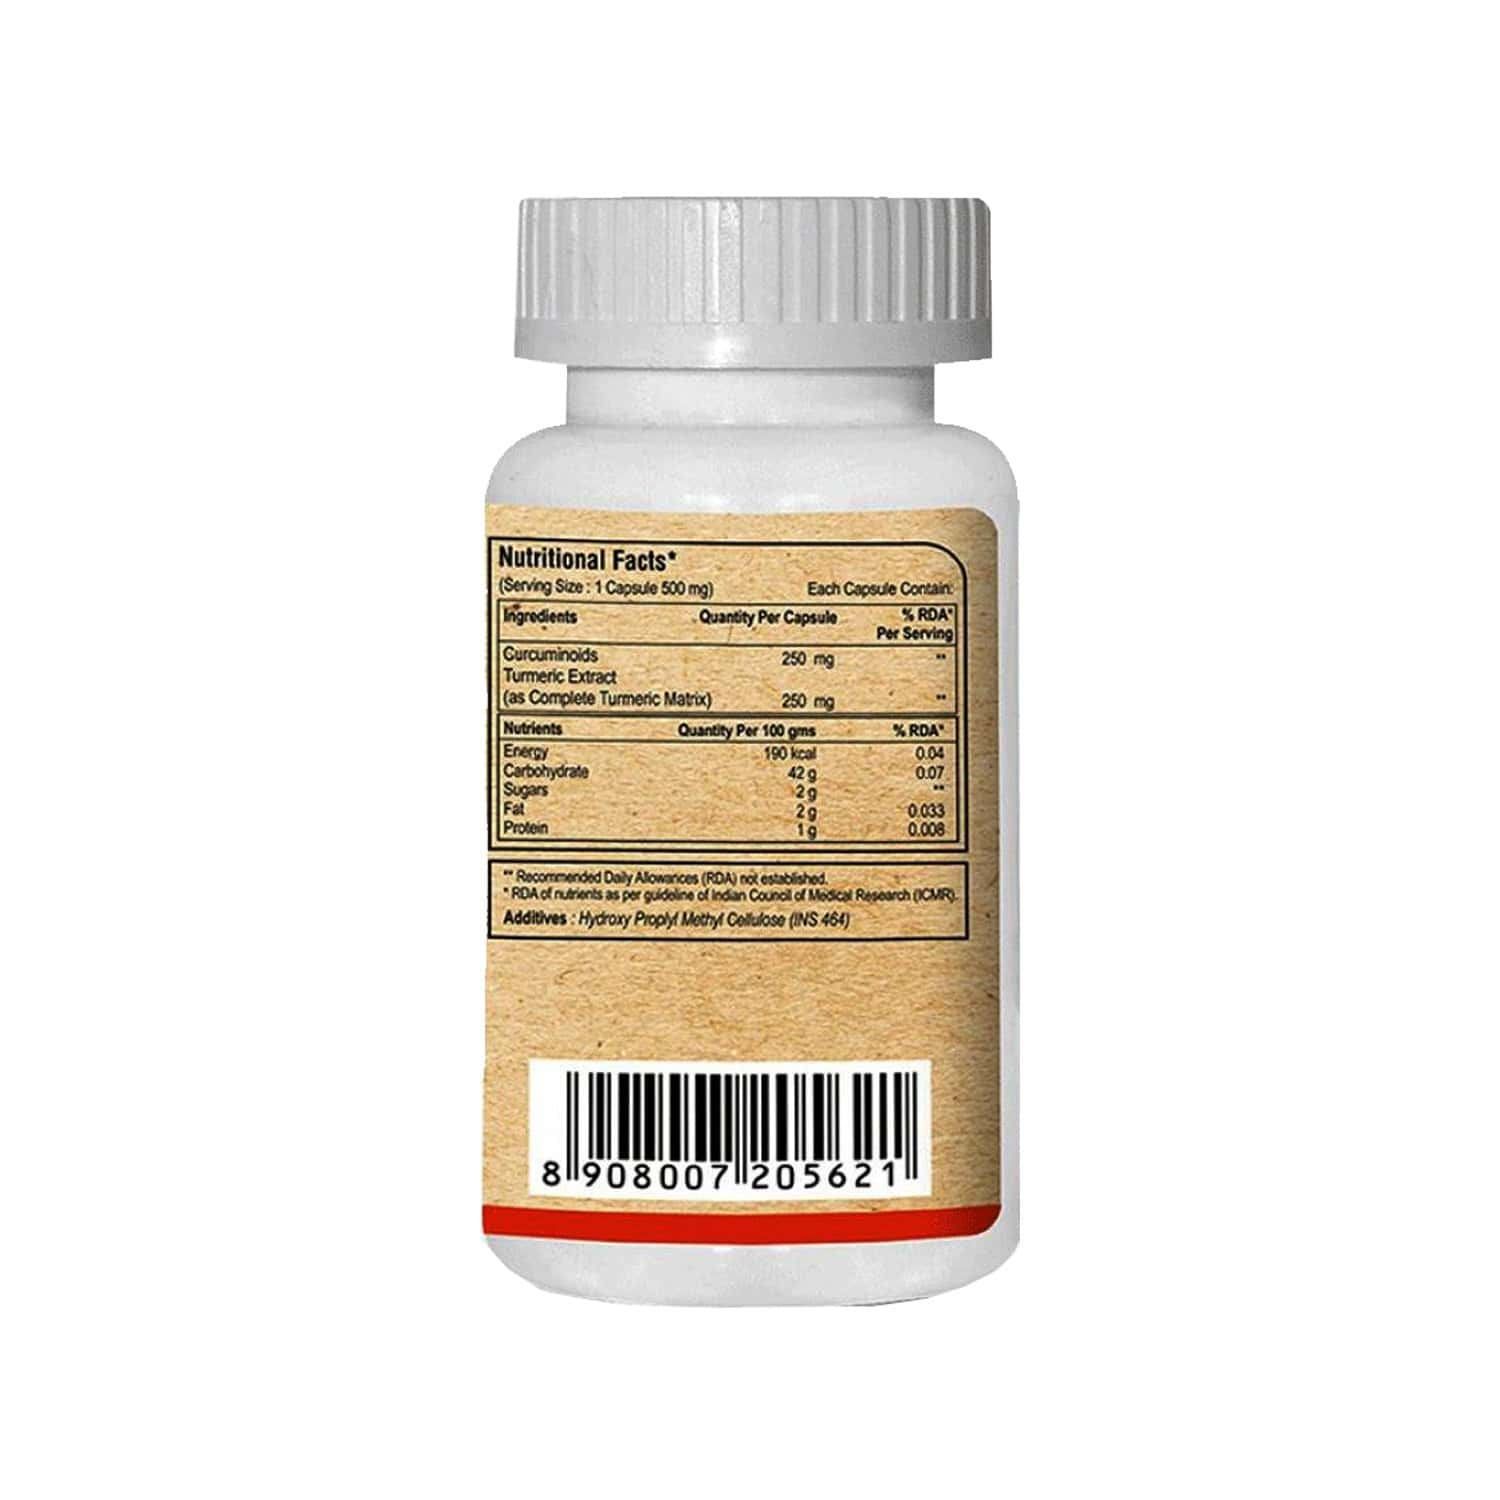 Pure Nutrition Curcumin Plus Anti-inflammatory Capsules With Curcuminoids & Turmeric Extracts Bottle Of 30